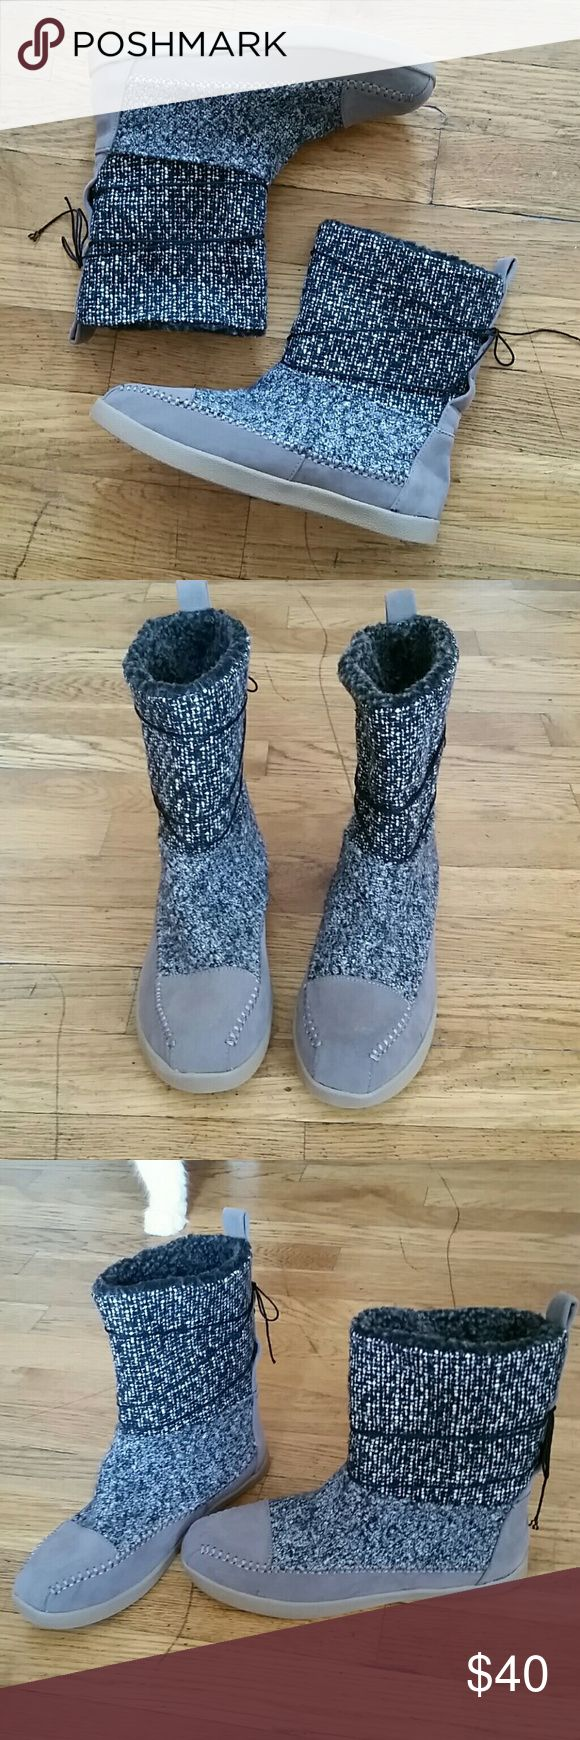 New Madden Girl sweater mocassin boots sz 6 New without box Madden Girl mocassin boots. Beautiful sweater material with a fleece lining inside. Madden Girl Shoes Ankle Boots & Booties